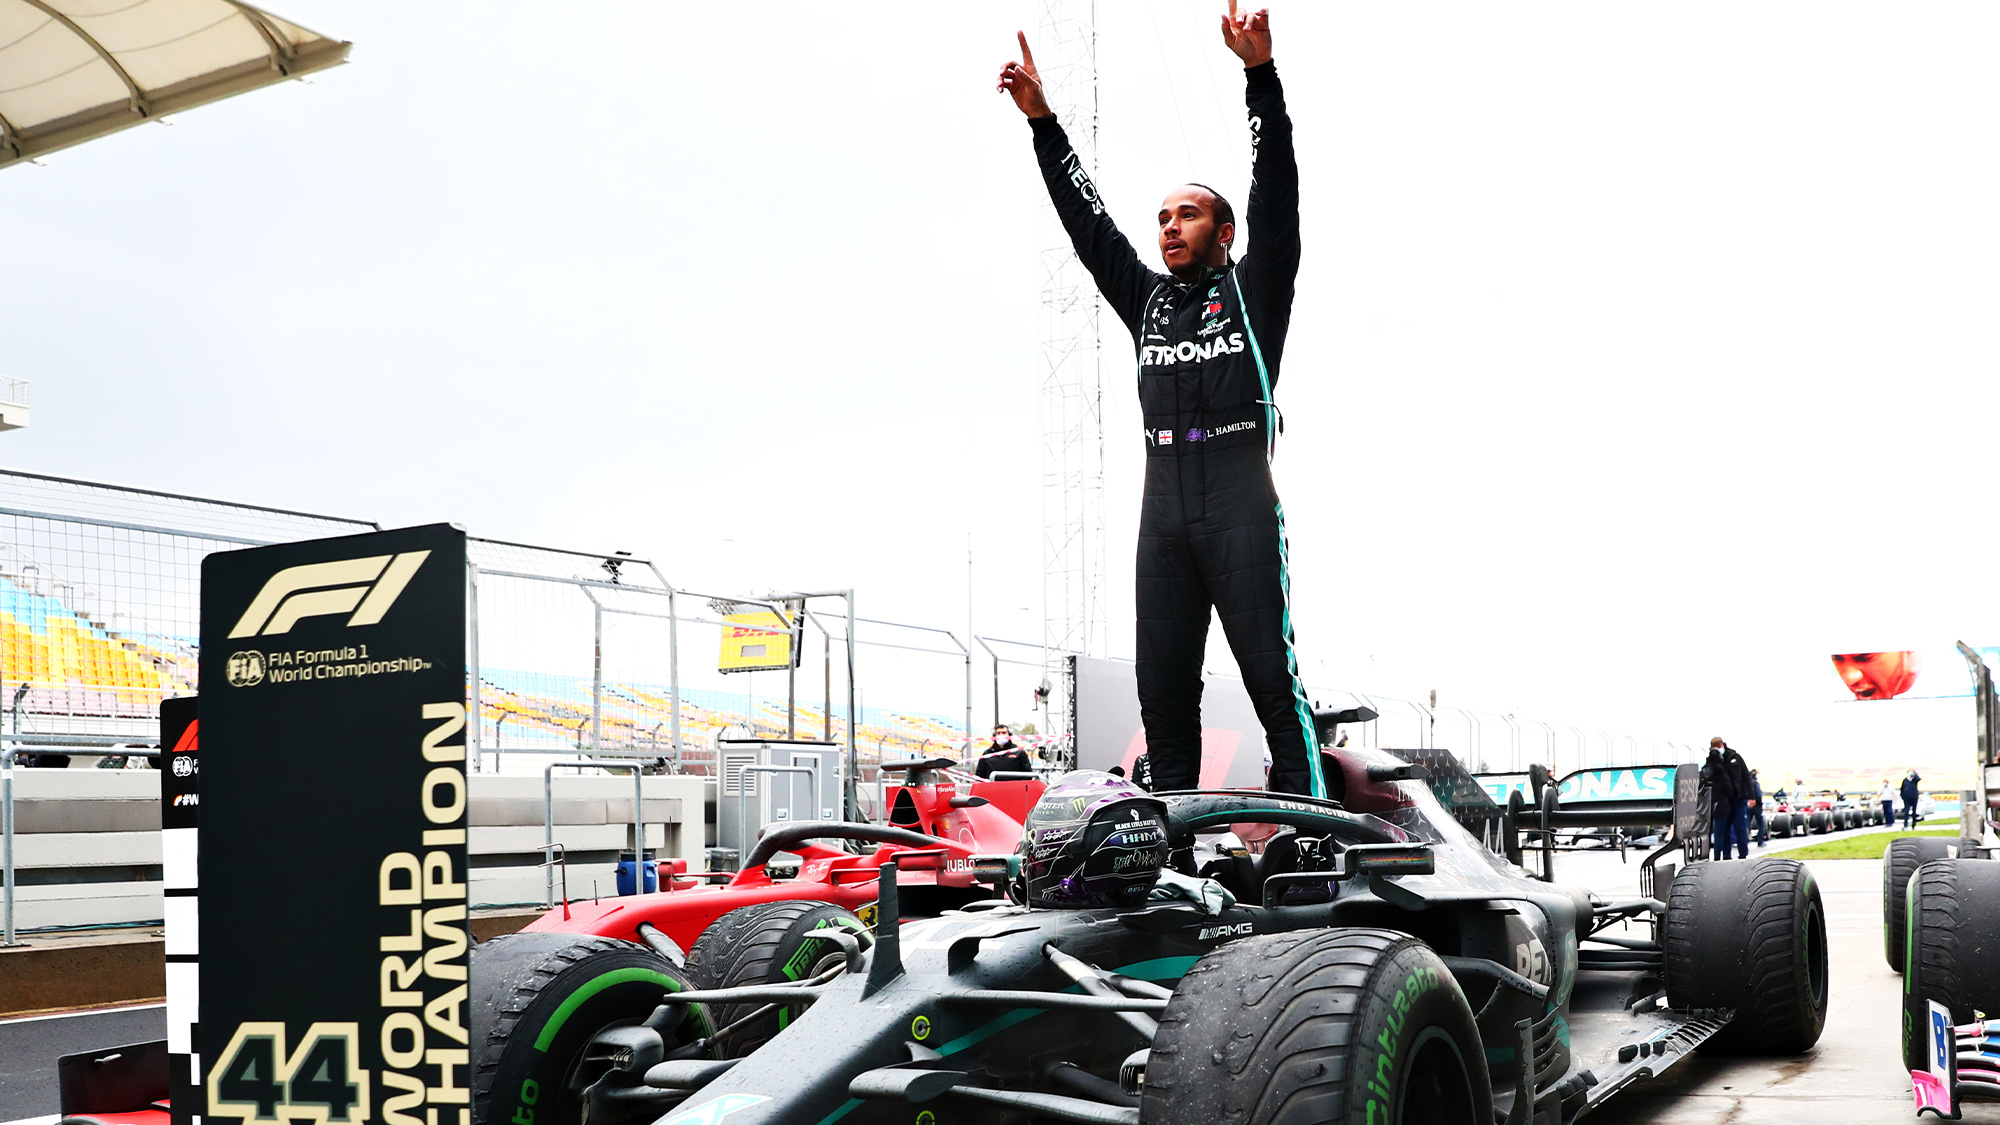 2020 Turkish Grand Prix report: Hamilton's sensational win clinches 7th F1  title - Motor Sport Magazine